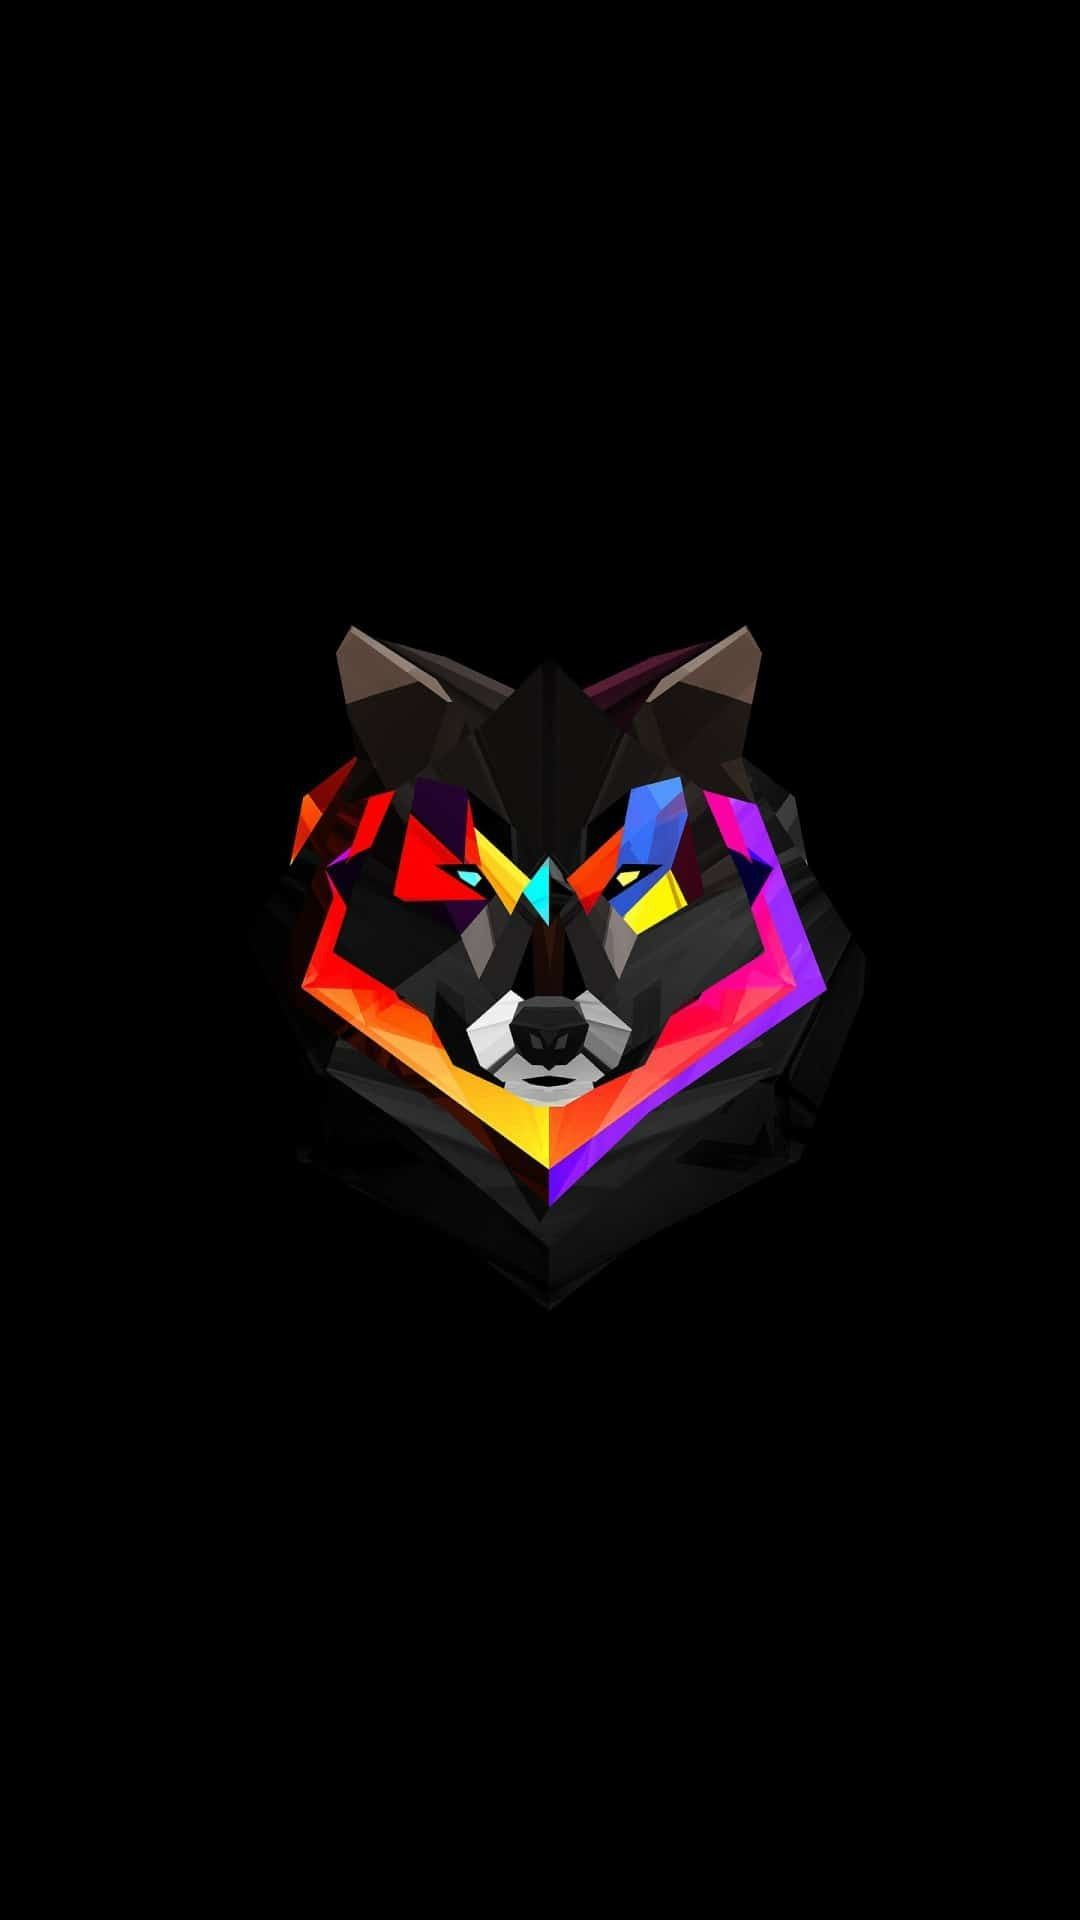 1080x1920 70+ Abstract Wolf Wallpapers on WallpaperPlay